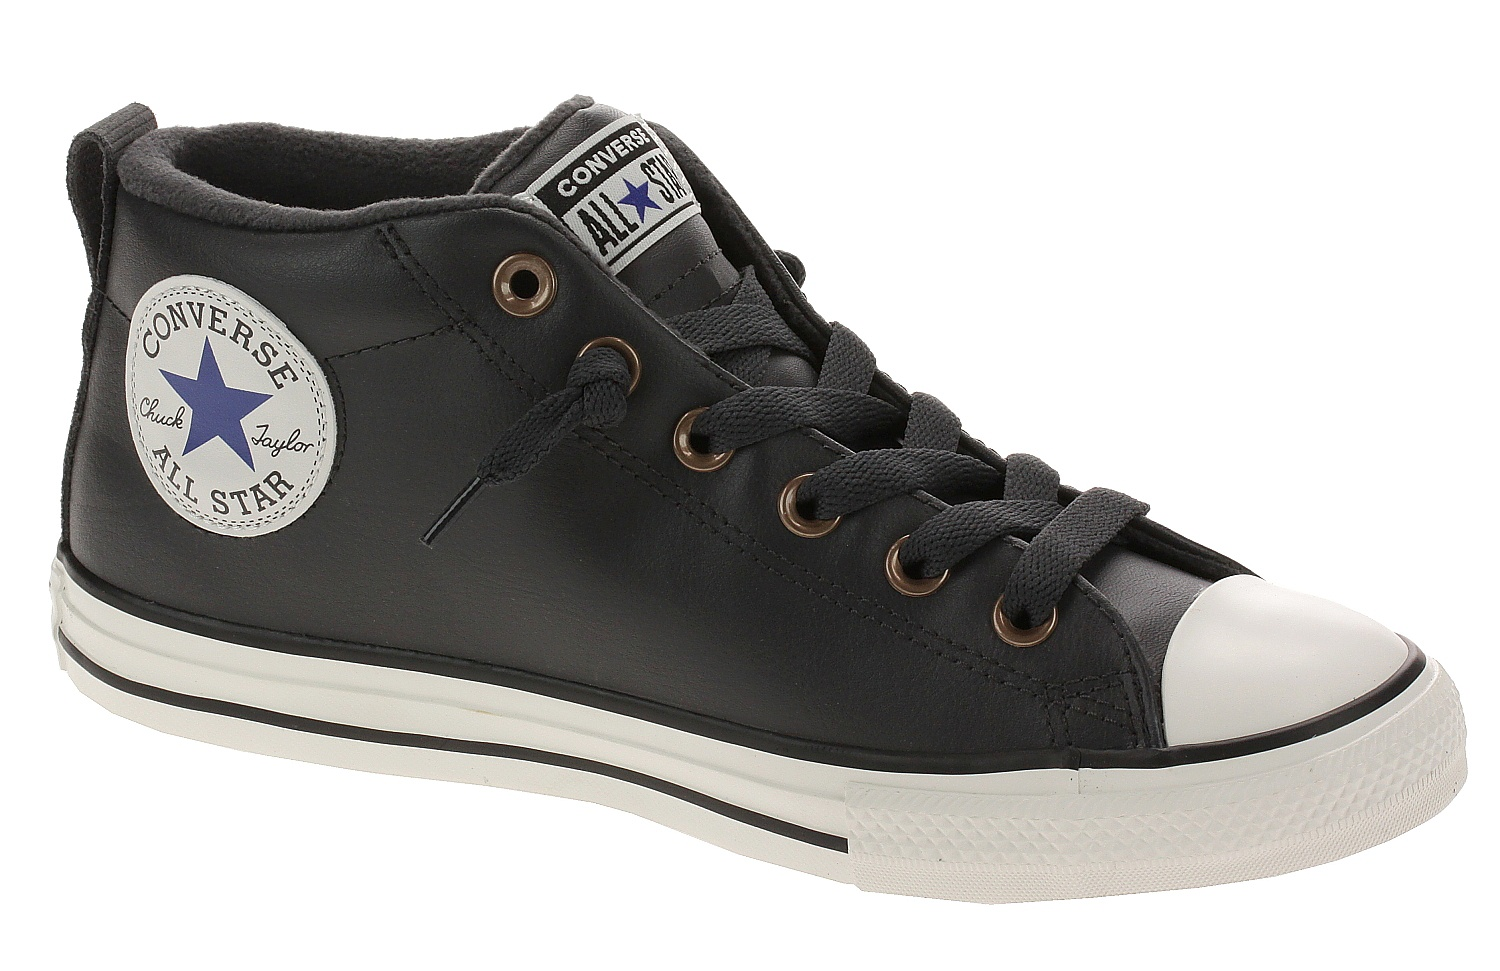 boty Converse Chuck Taylor All Star Street Red Rover Mid - 665148/Almost Black/Blue/Black 35